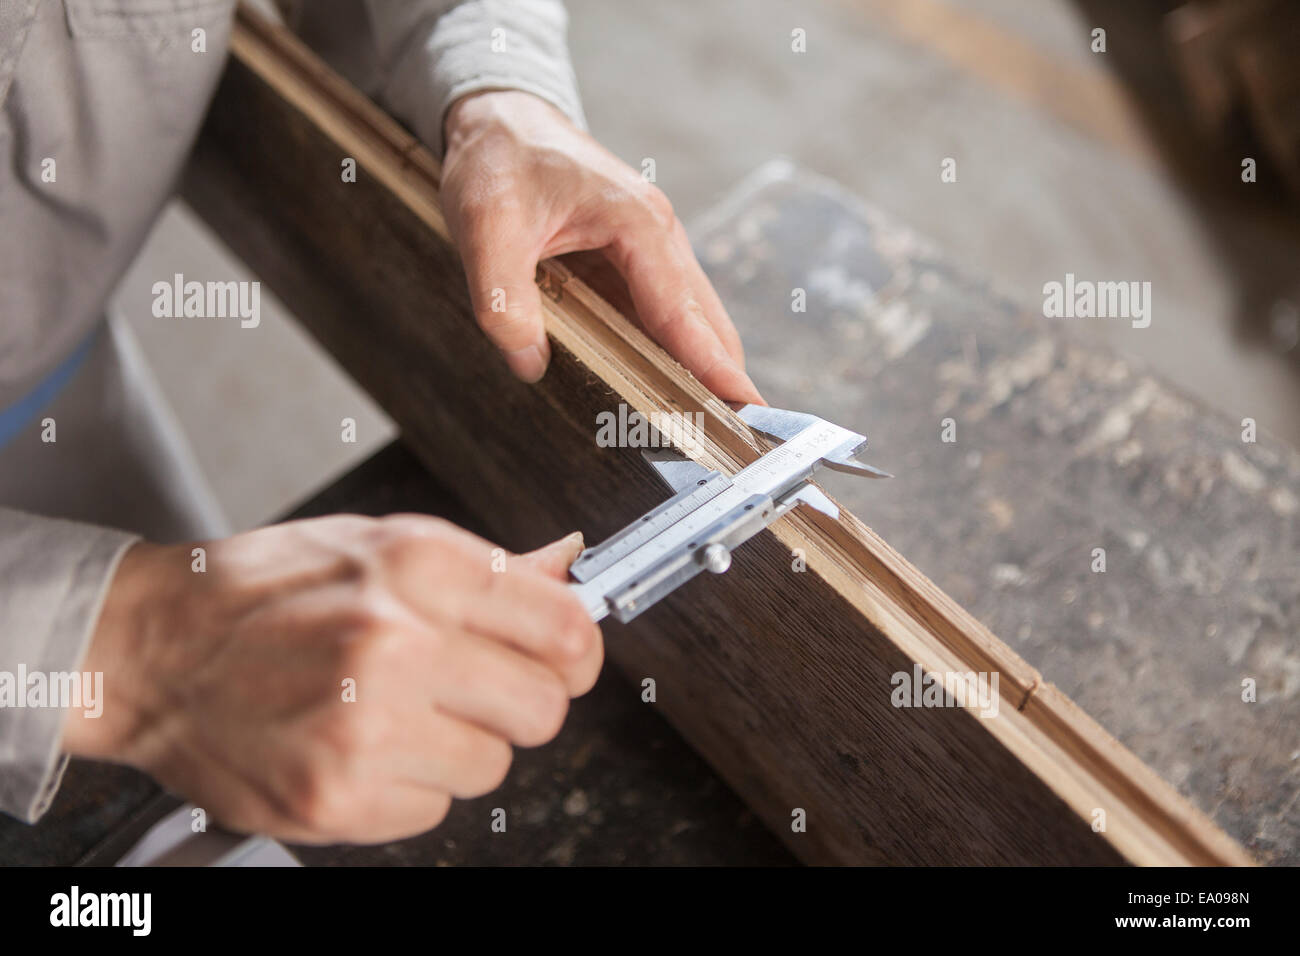 Carpenter measuring wood plank with vernier caliper in factory, Jiangsu, China - Stock Image